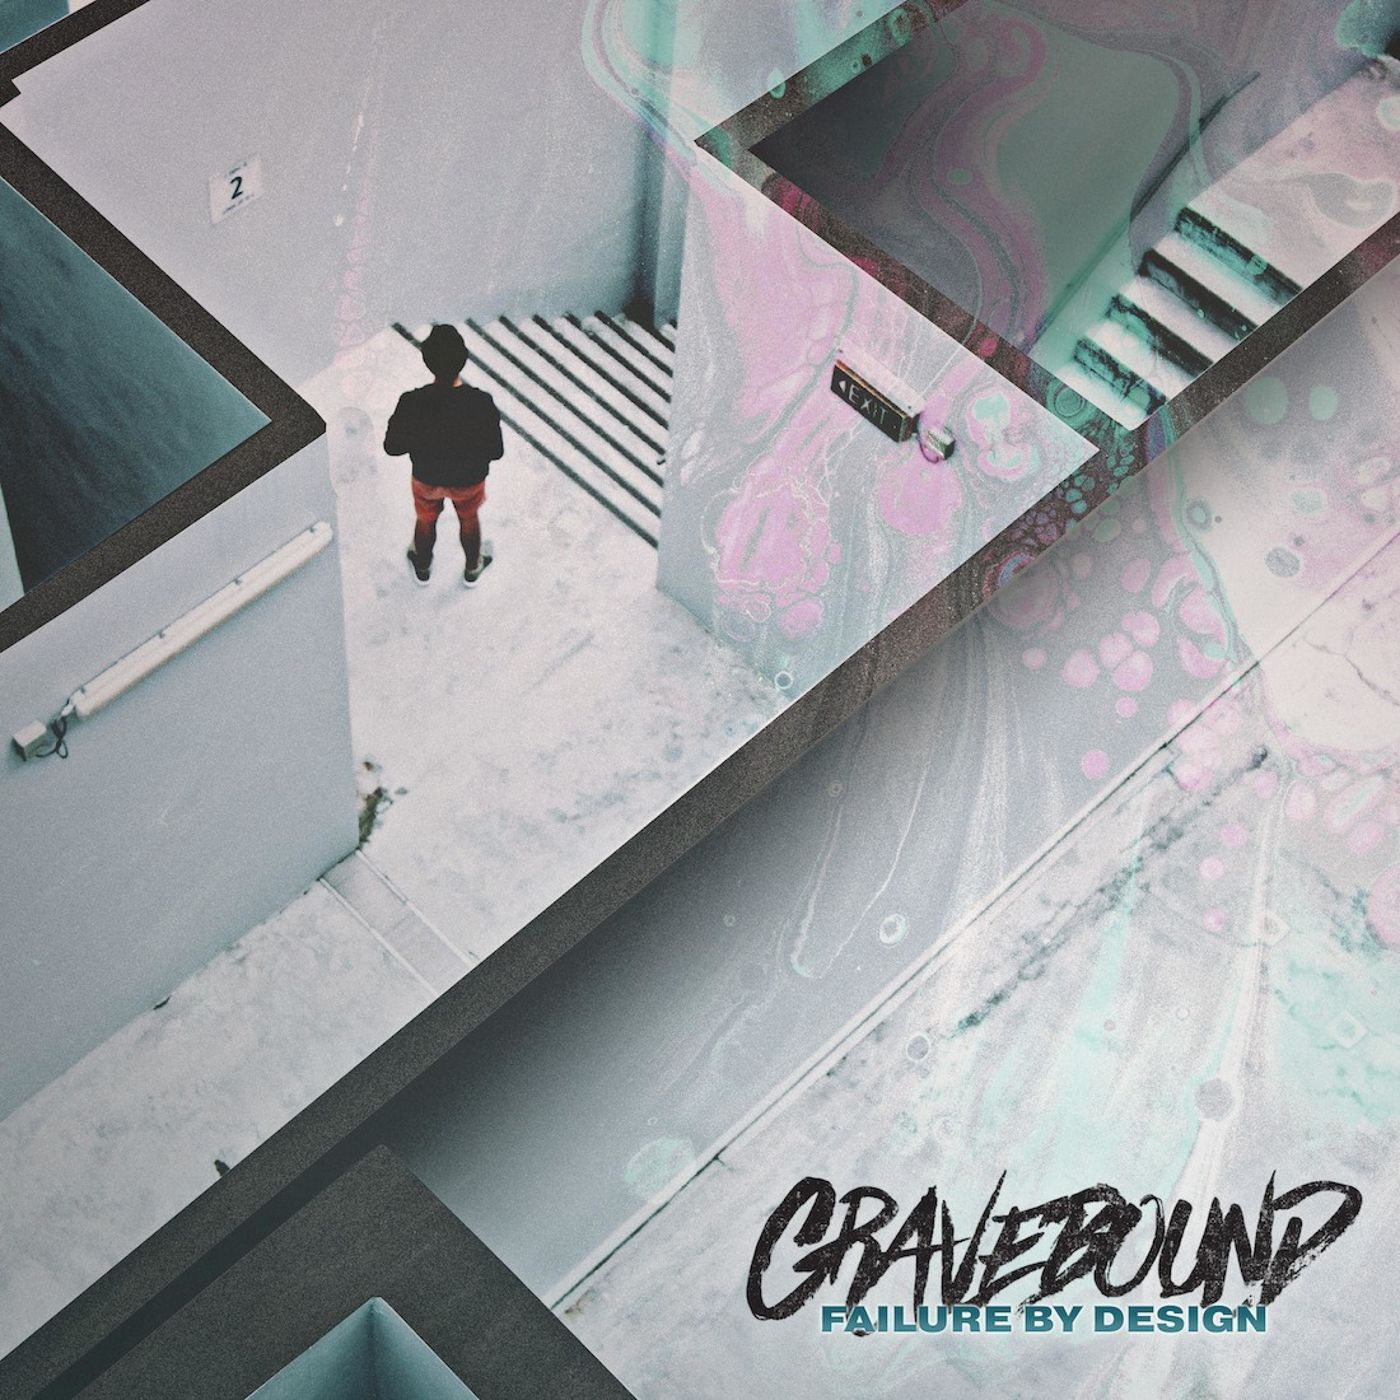 GraveBound - Failure by Design [single] (2020)